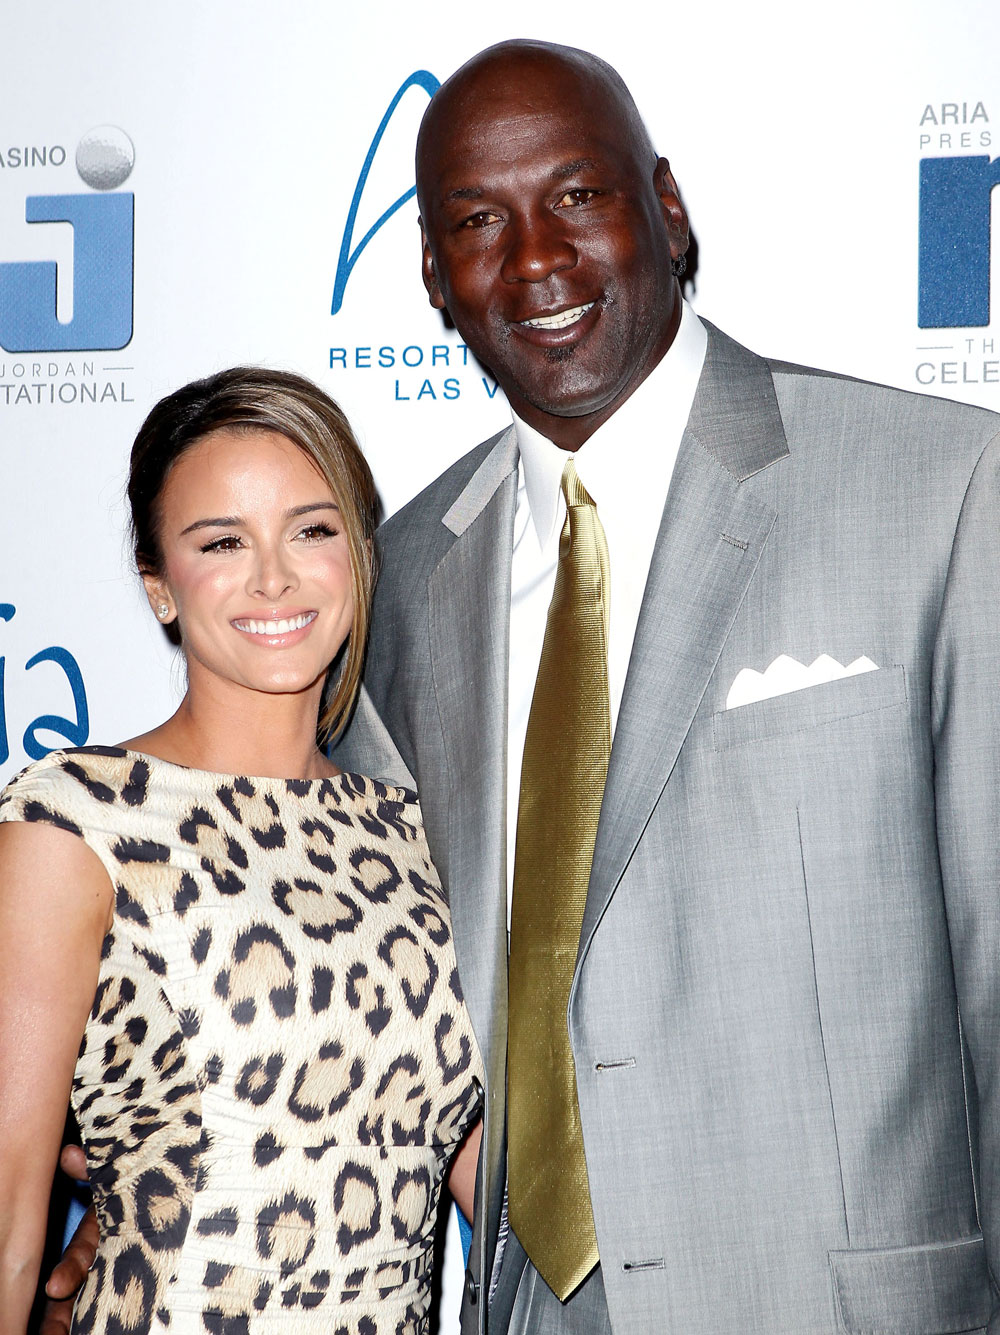 Image result for MICHAEL JORDAN AND WIFE PICS